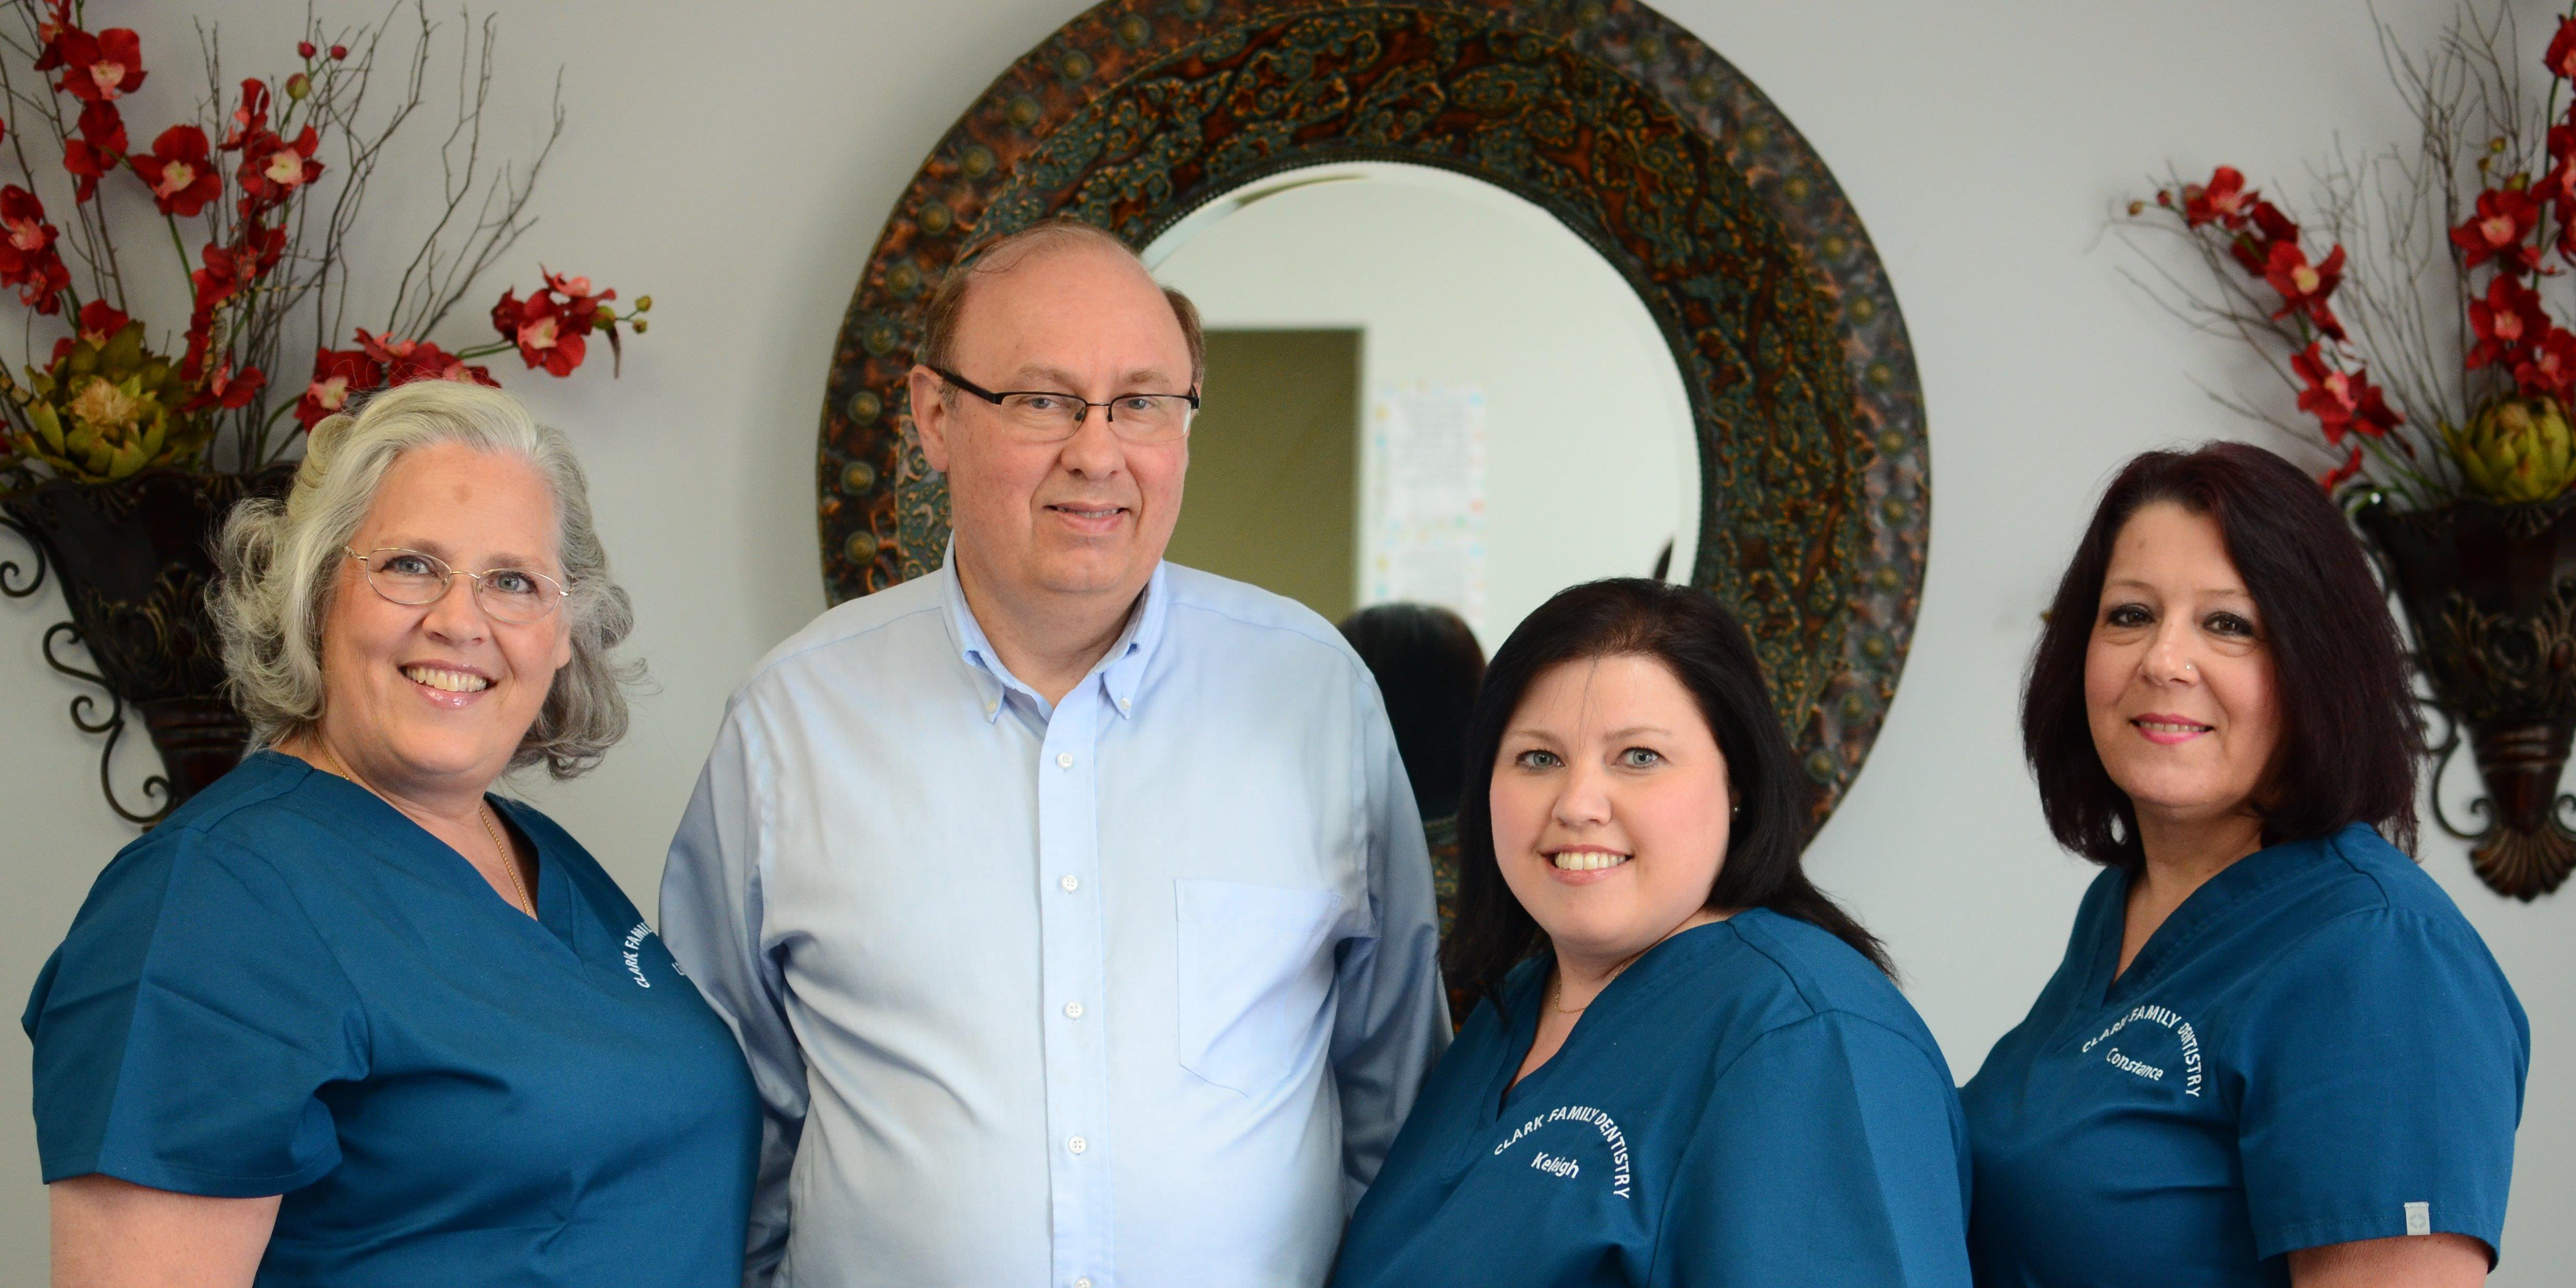 Decatur Dental Team - Clark Family Dentistry